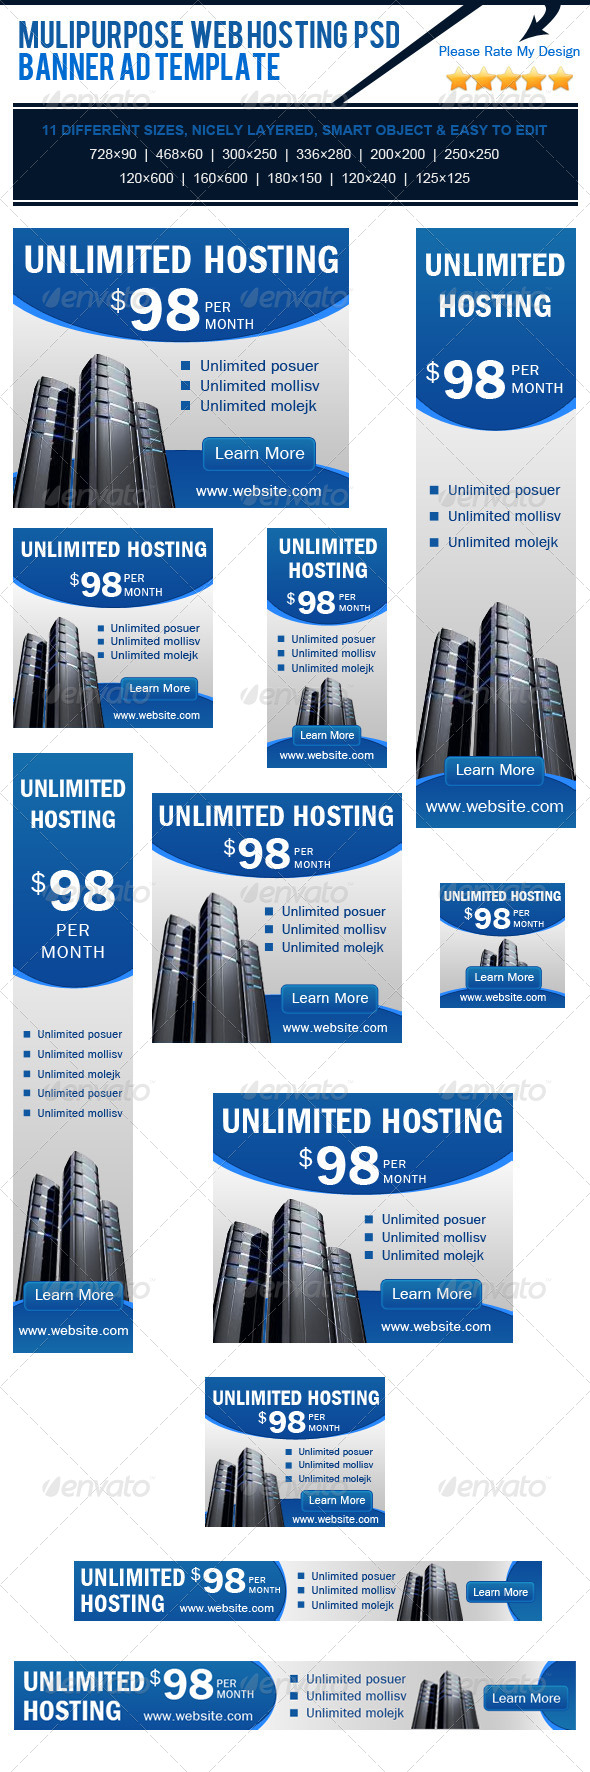 Multipurpose Web Hosting PSD Banner Ad Template - Banners & Ads Web Elements